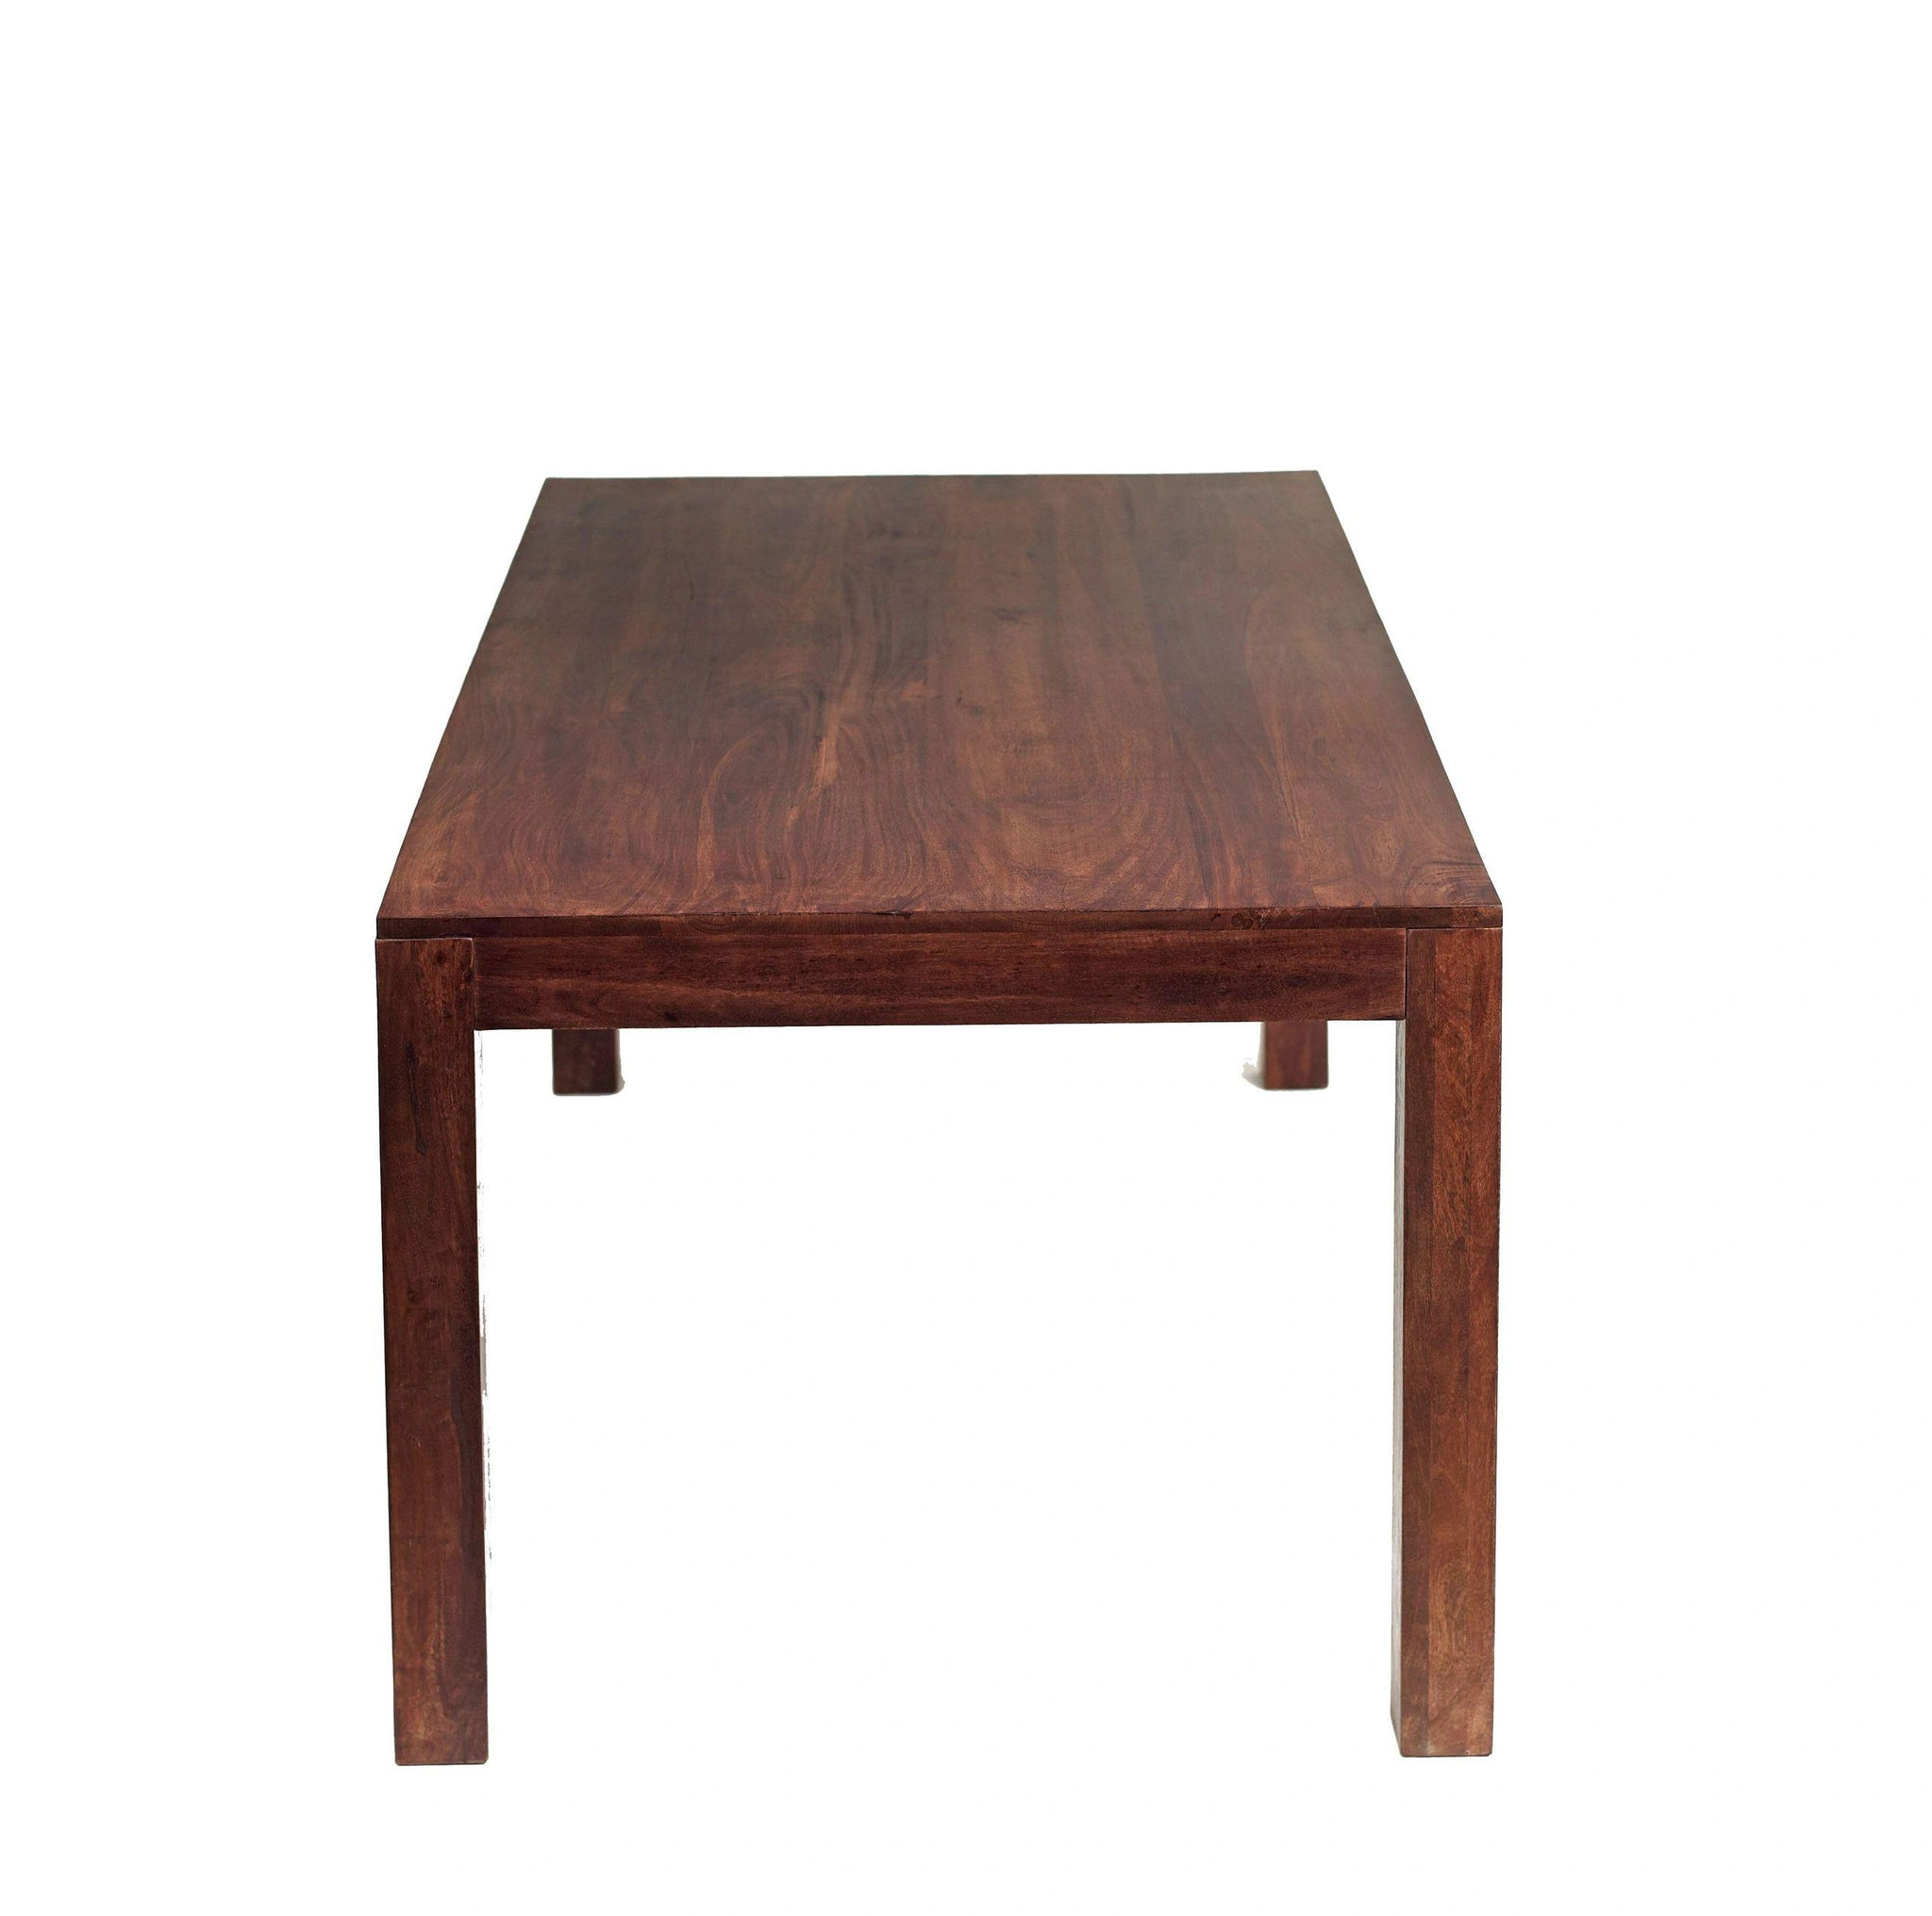 Indian Hub TOKO Mango Large Dining Table 6 Ft (180 cm)